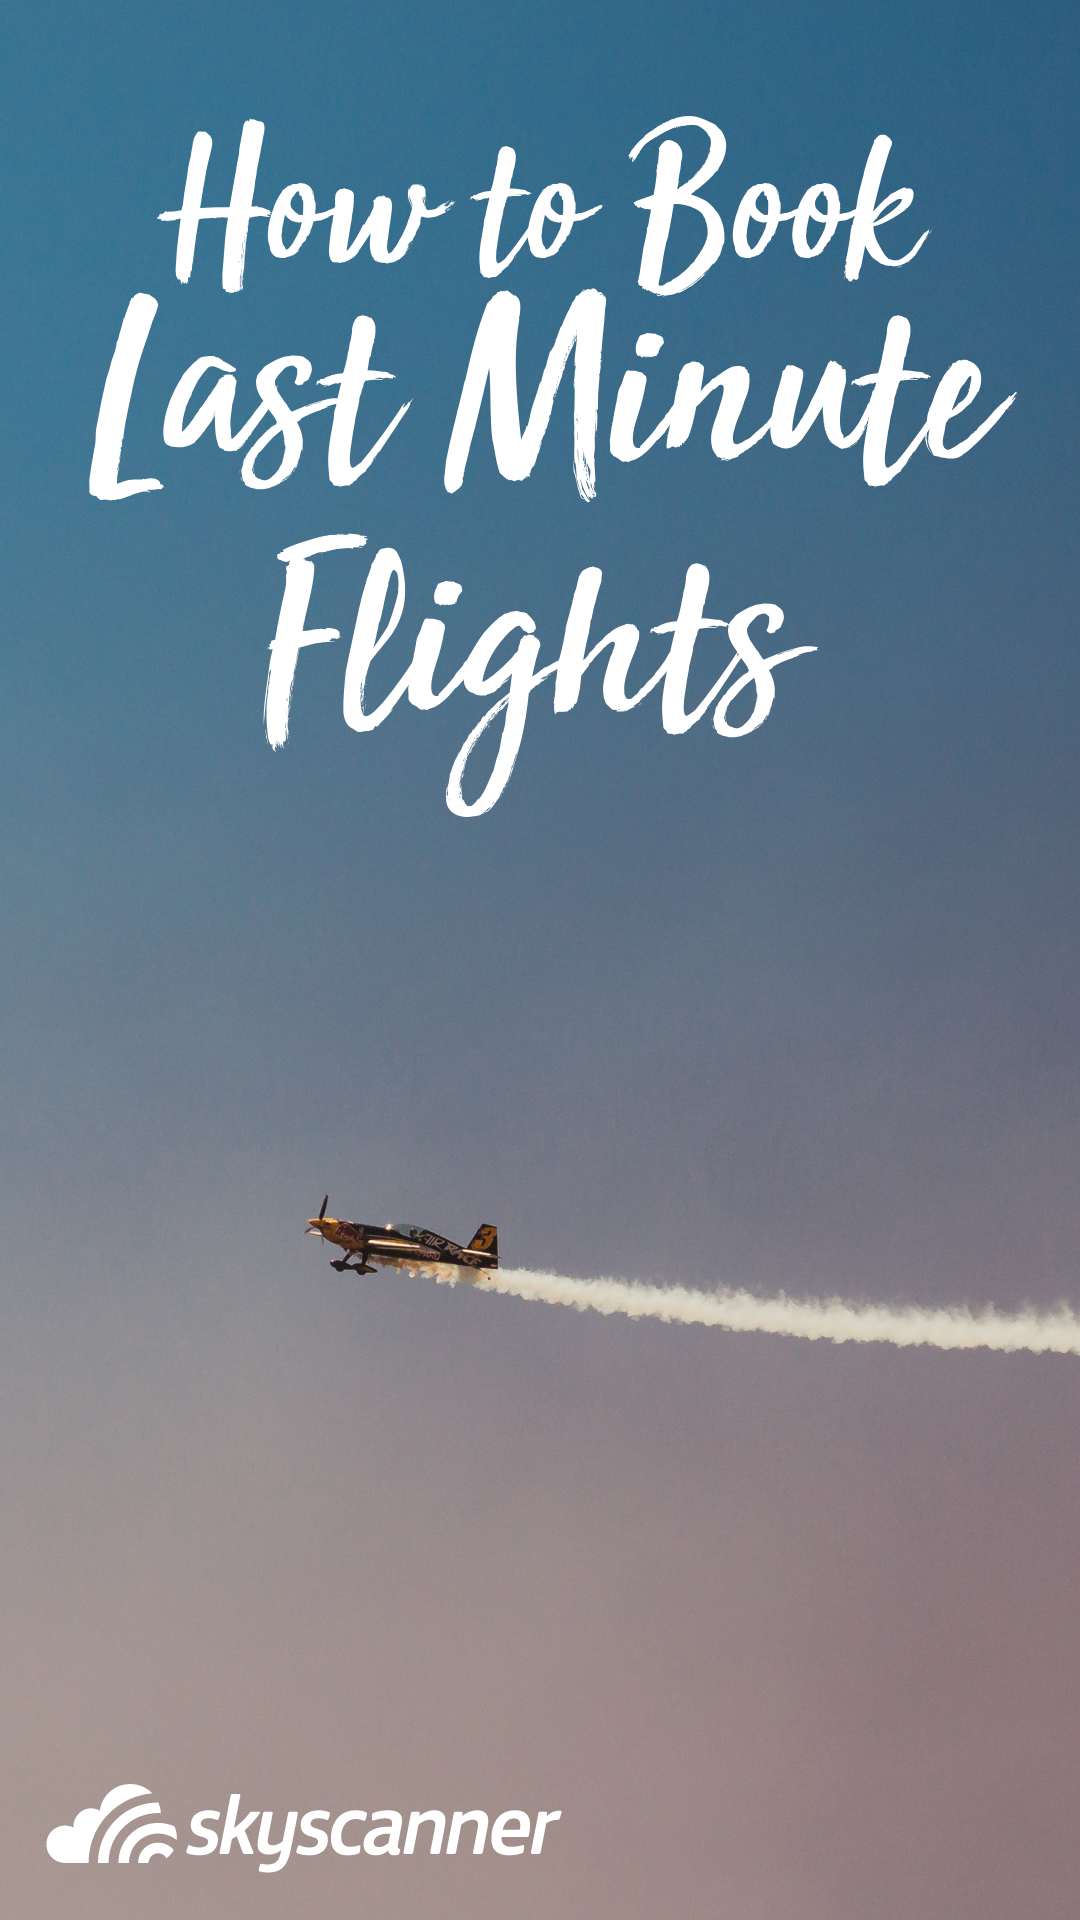 Our best flight offers for you